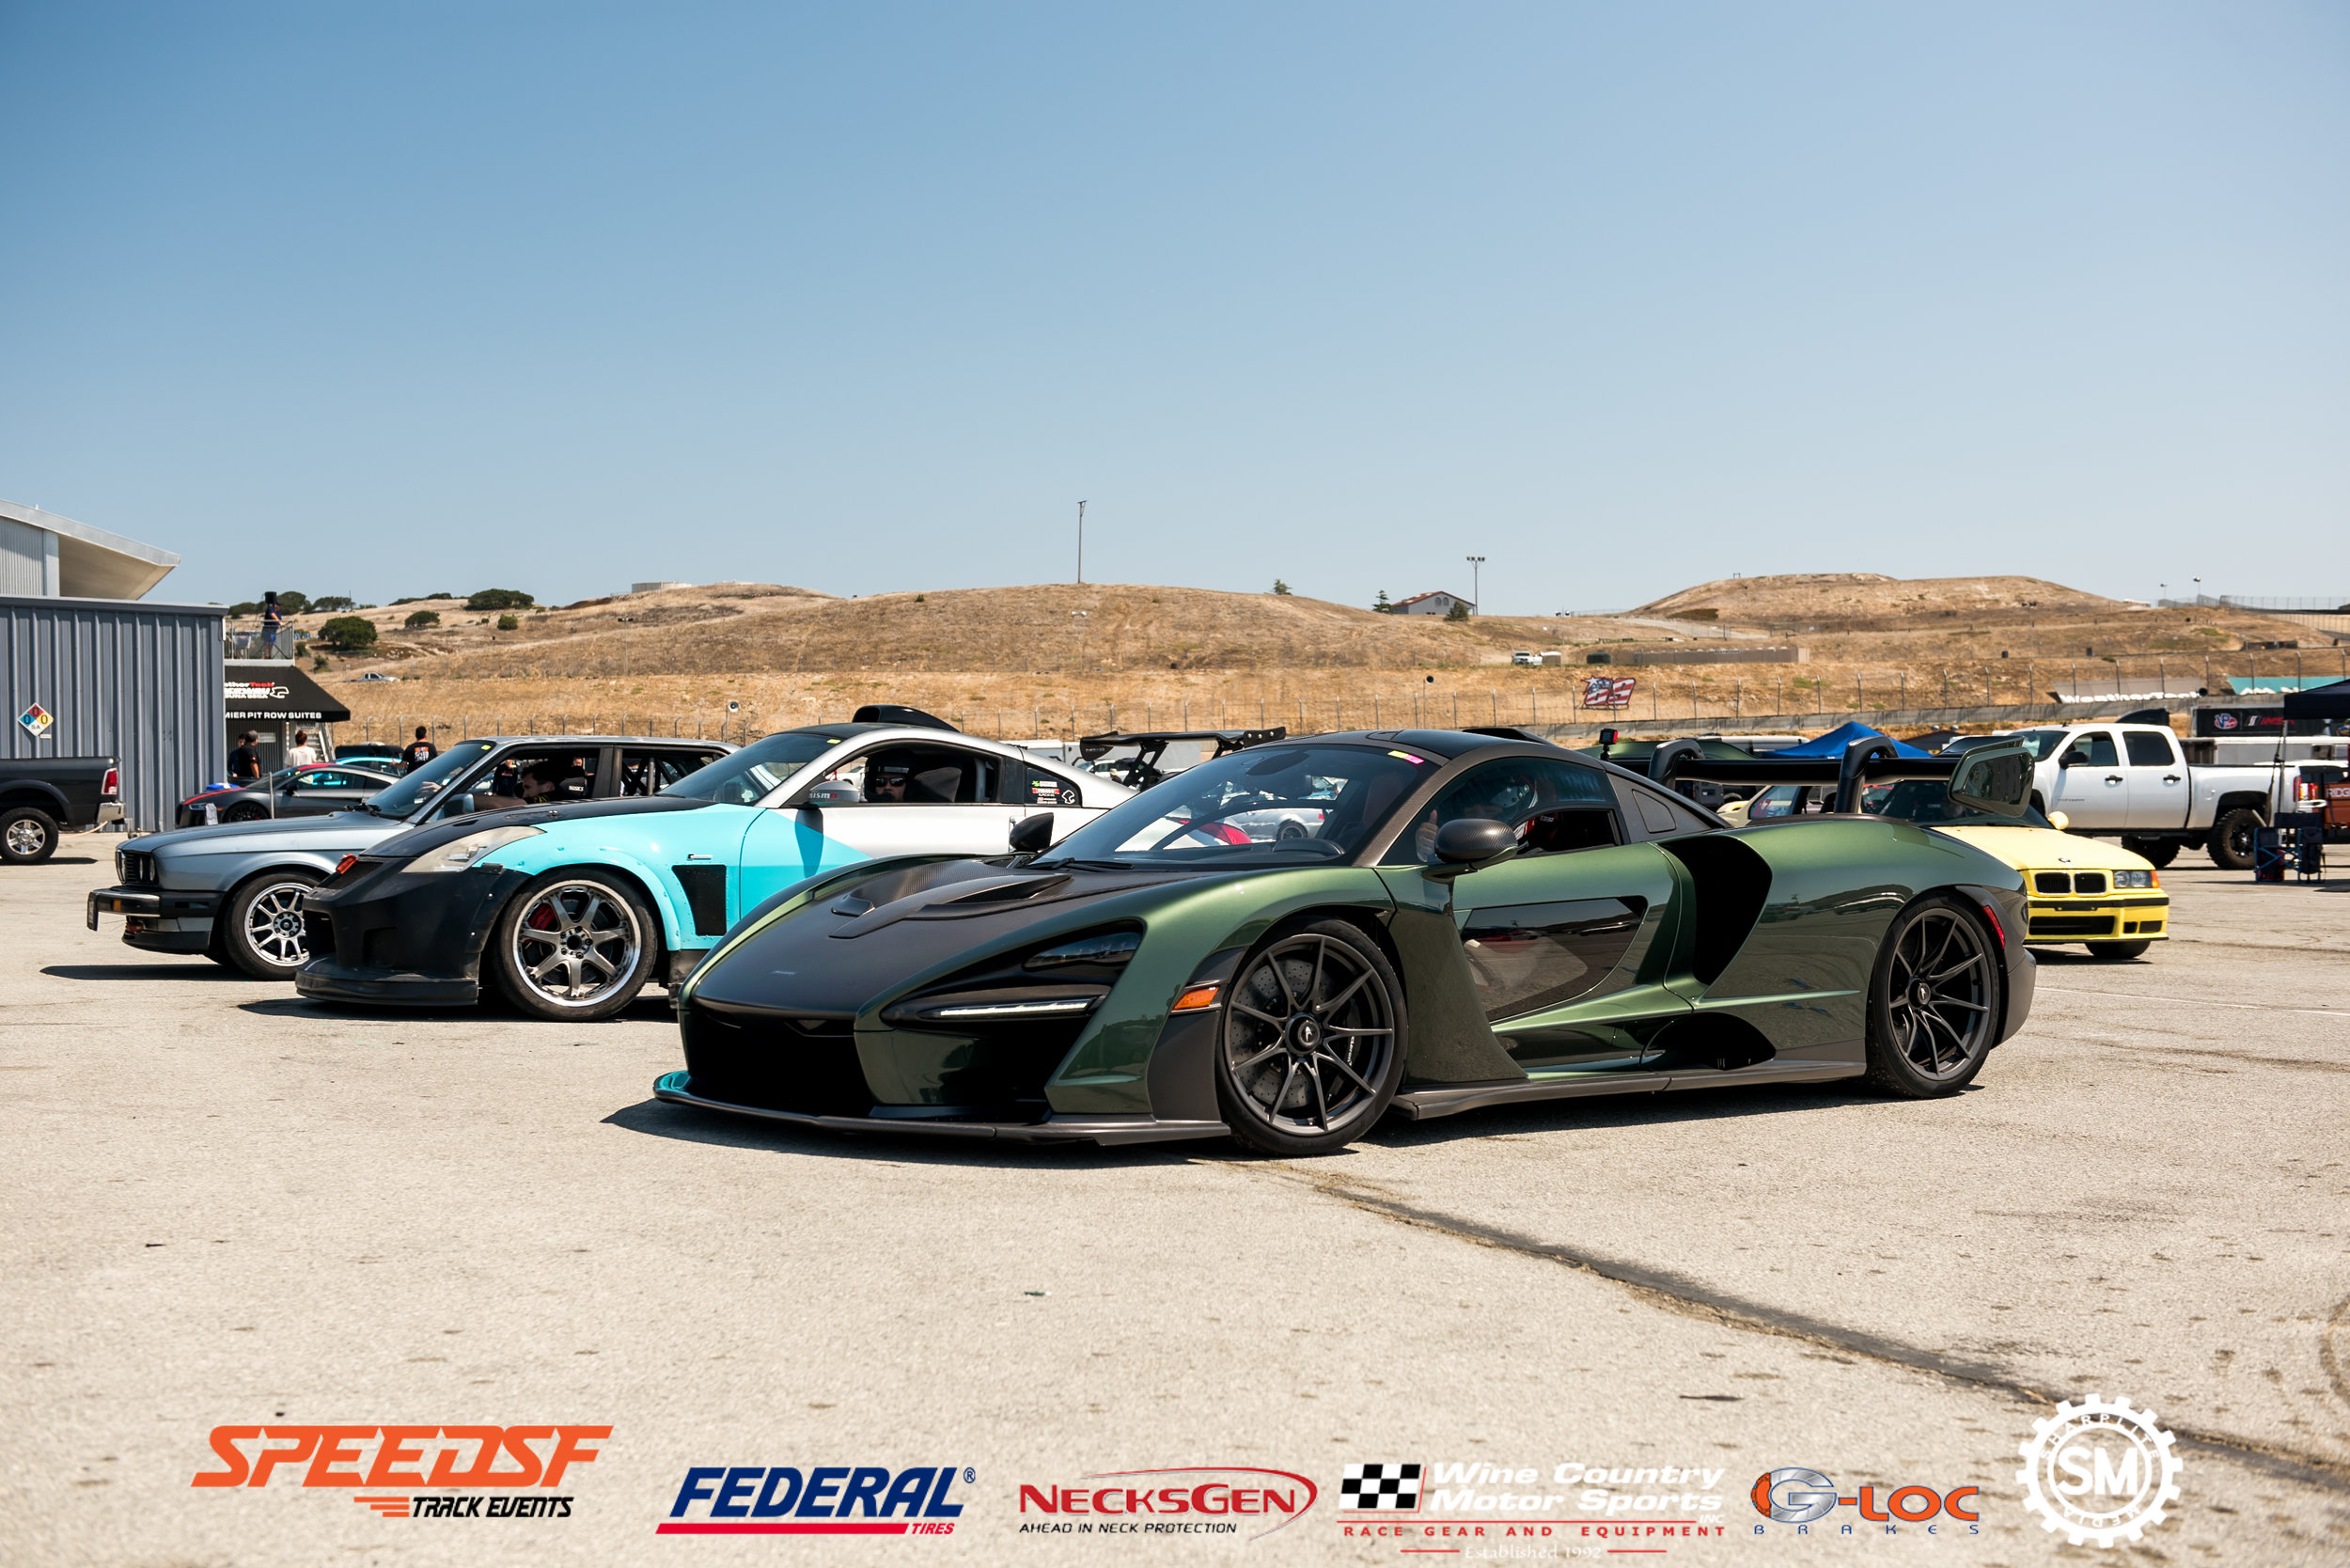 SpeedSF Paddock Sunday-44.jpg